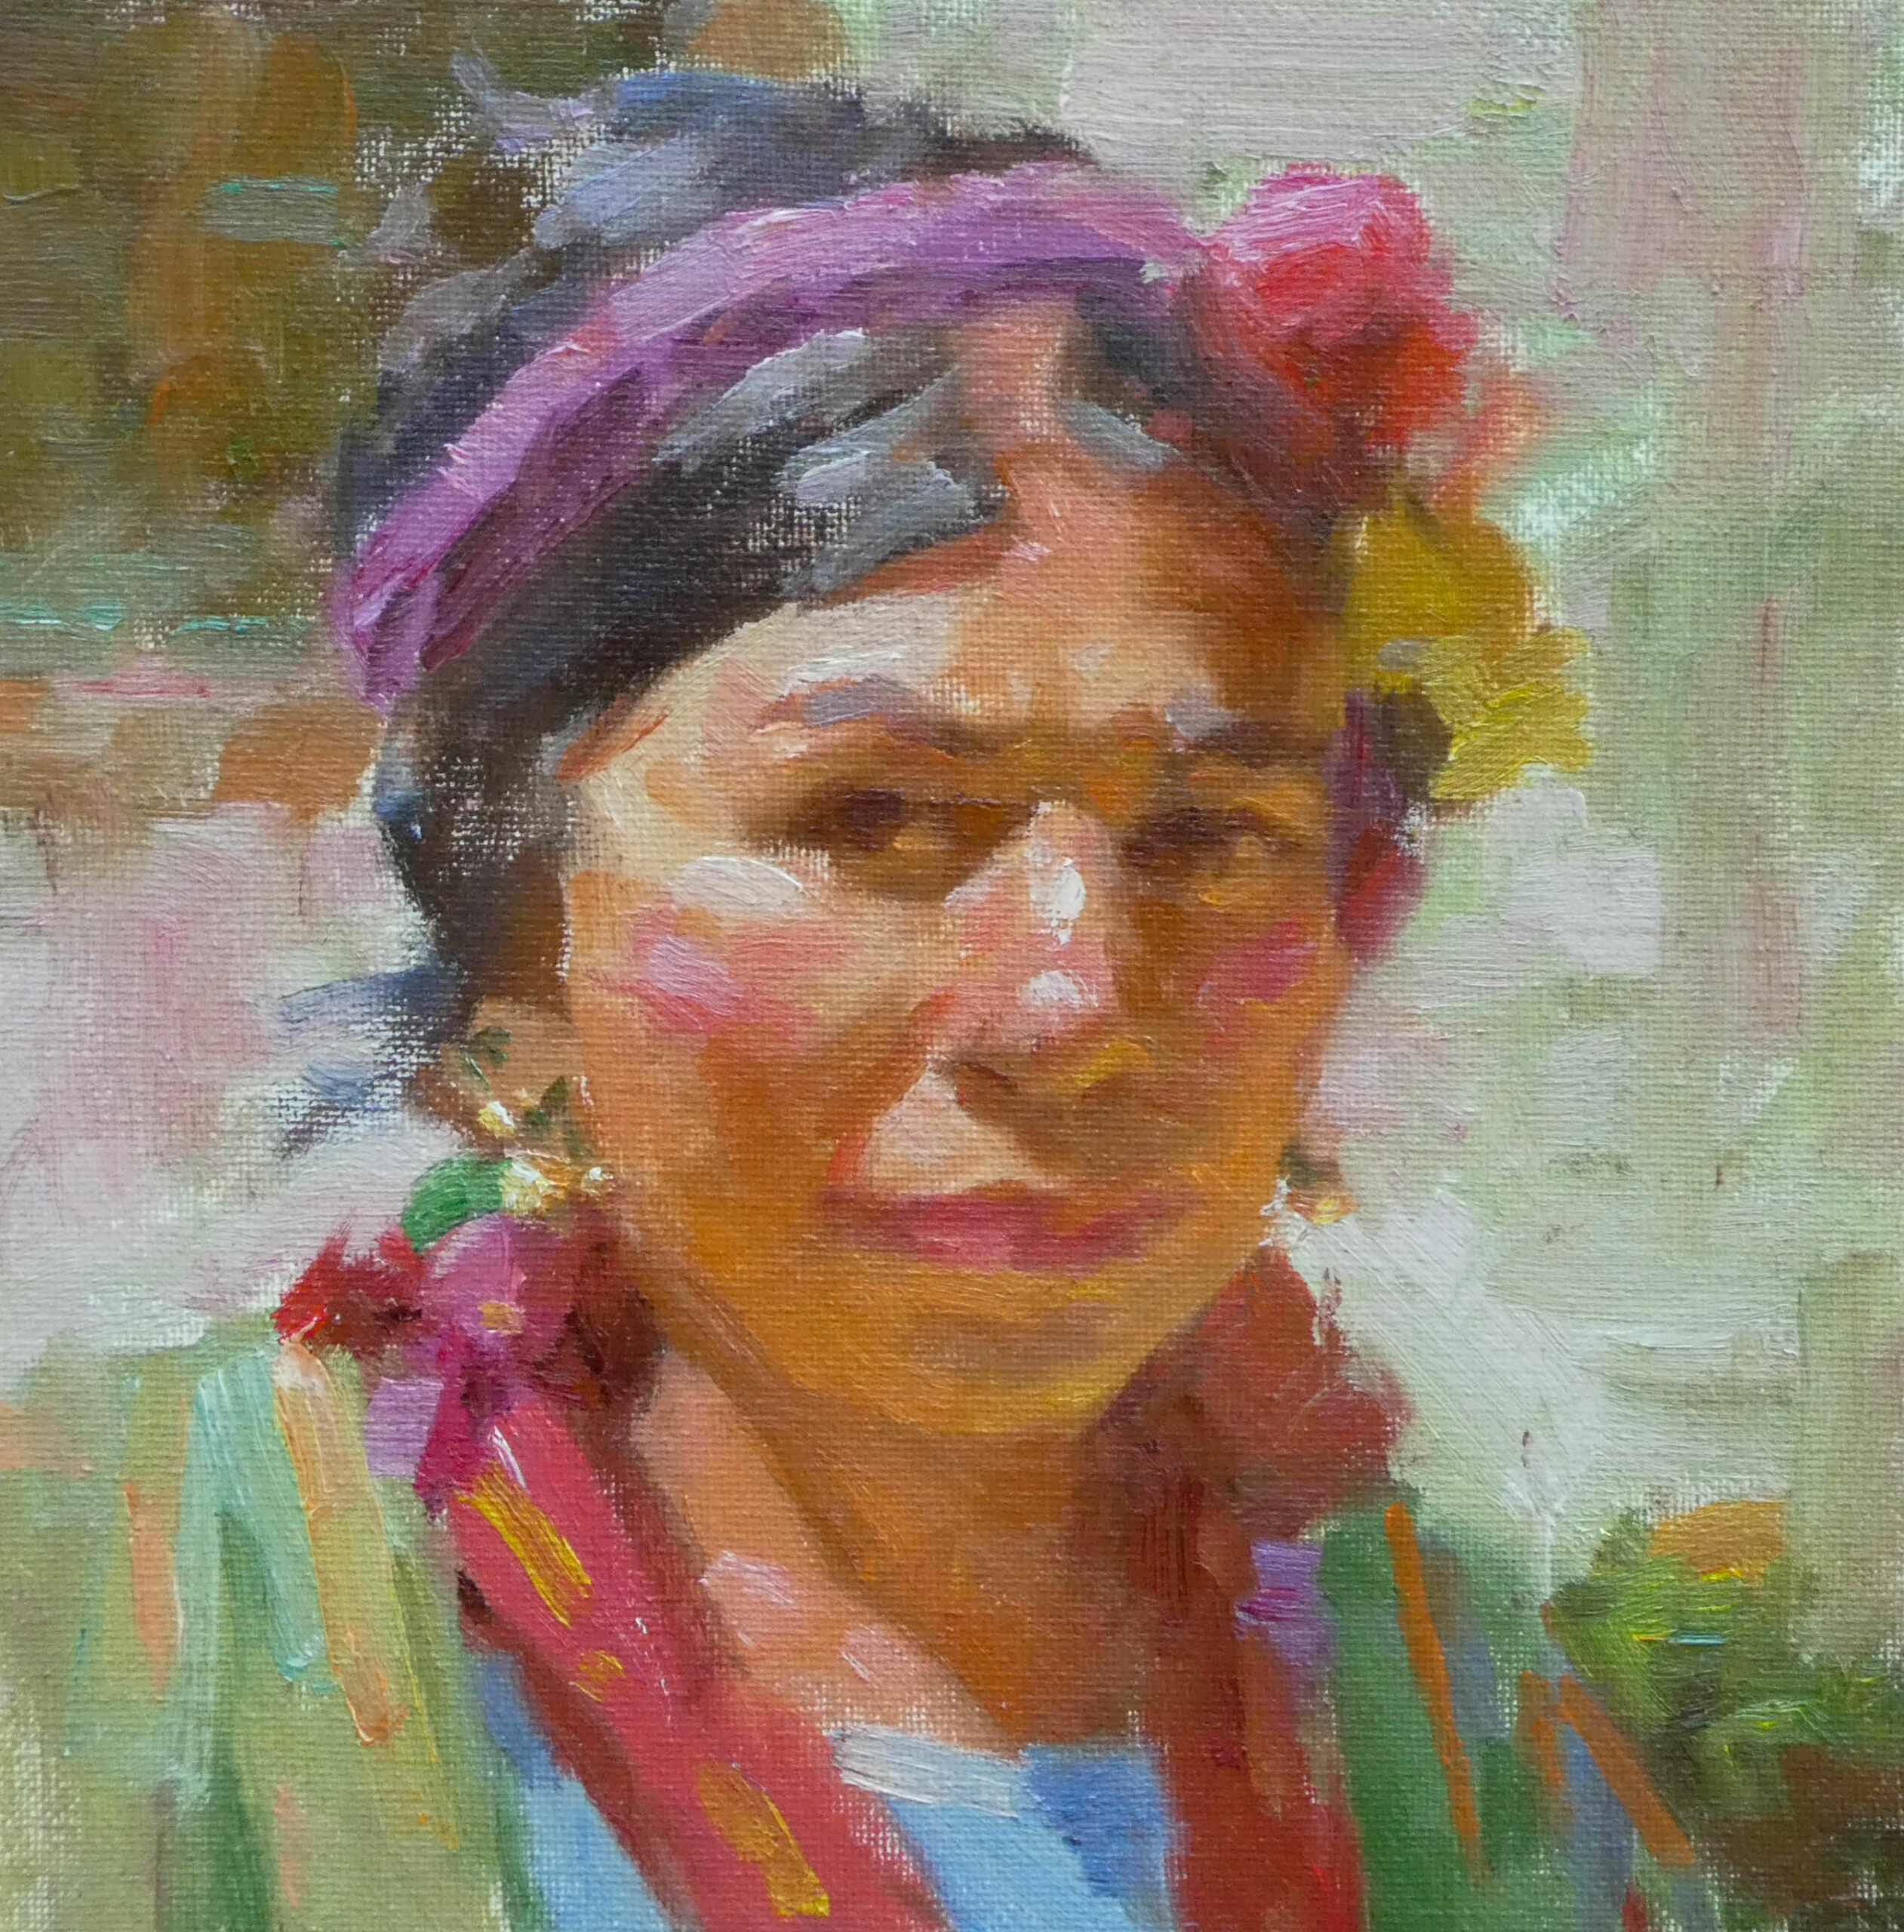 Mueller_Ned_Mayan-Woman_Oil-on-linen_8x8_$1200